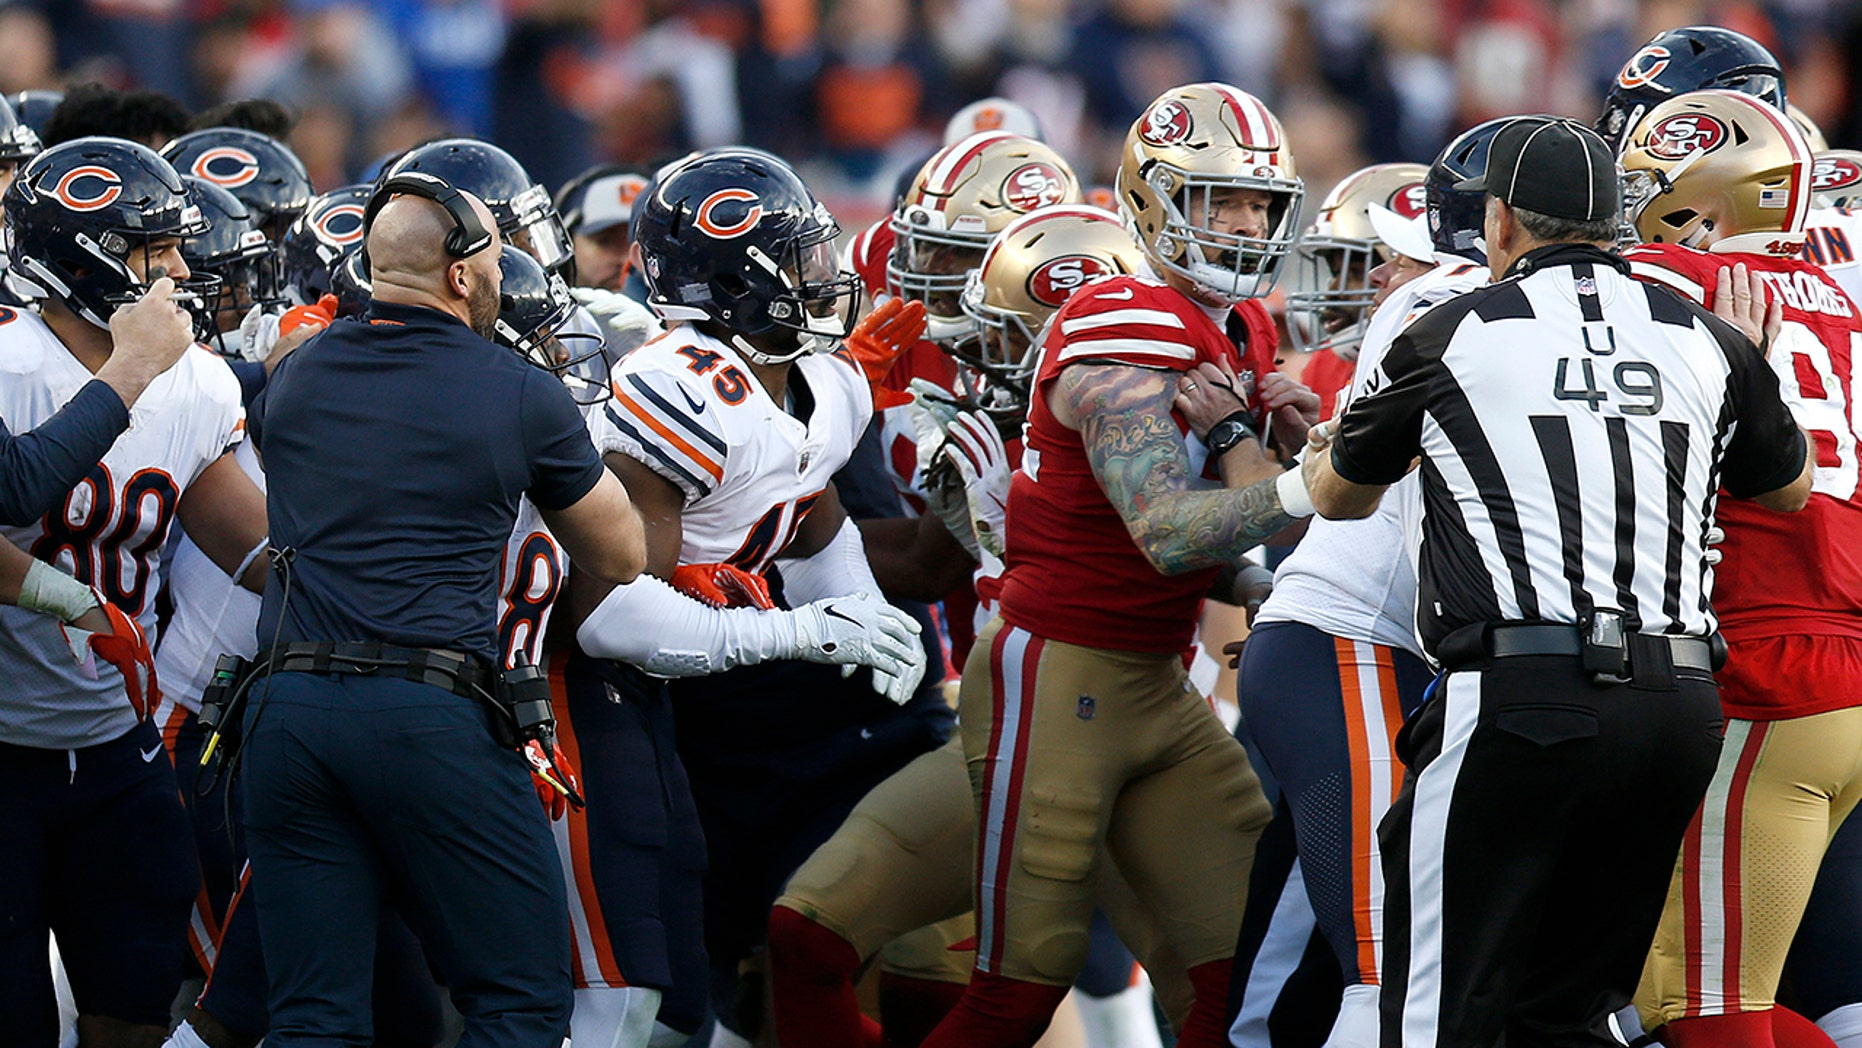 Bears vs. 49ers: 5 top takeaways from San Francisco's Week 16 loss